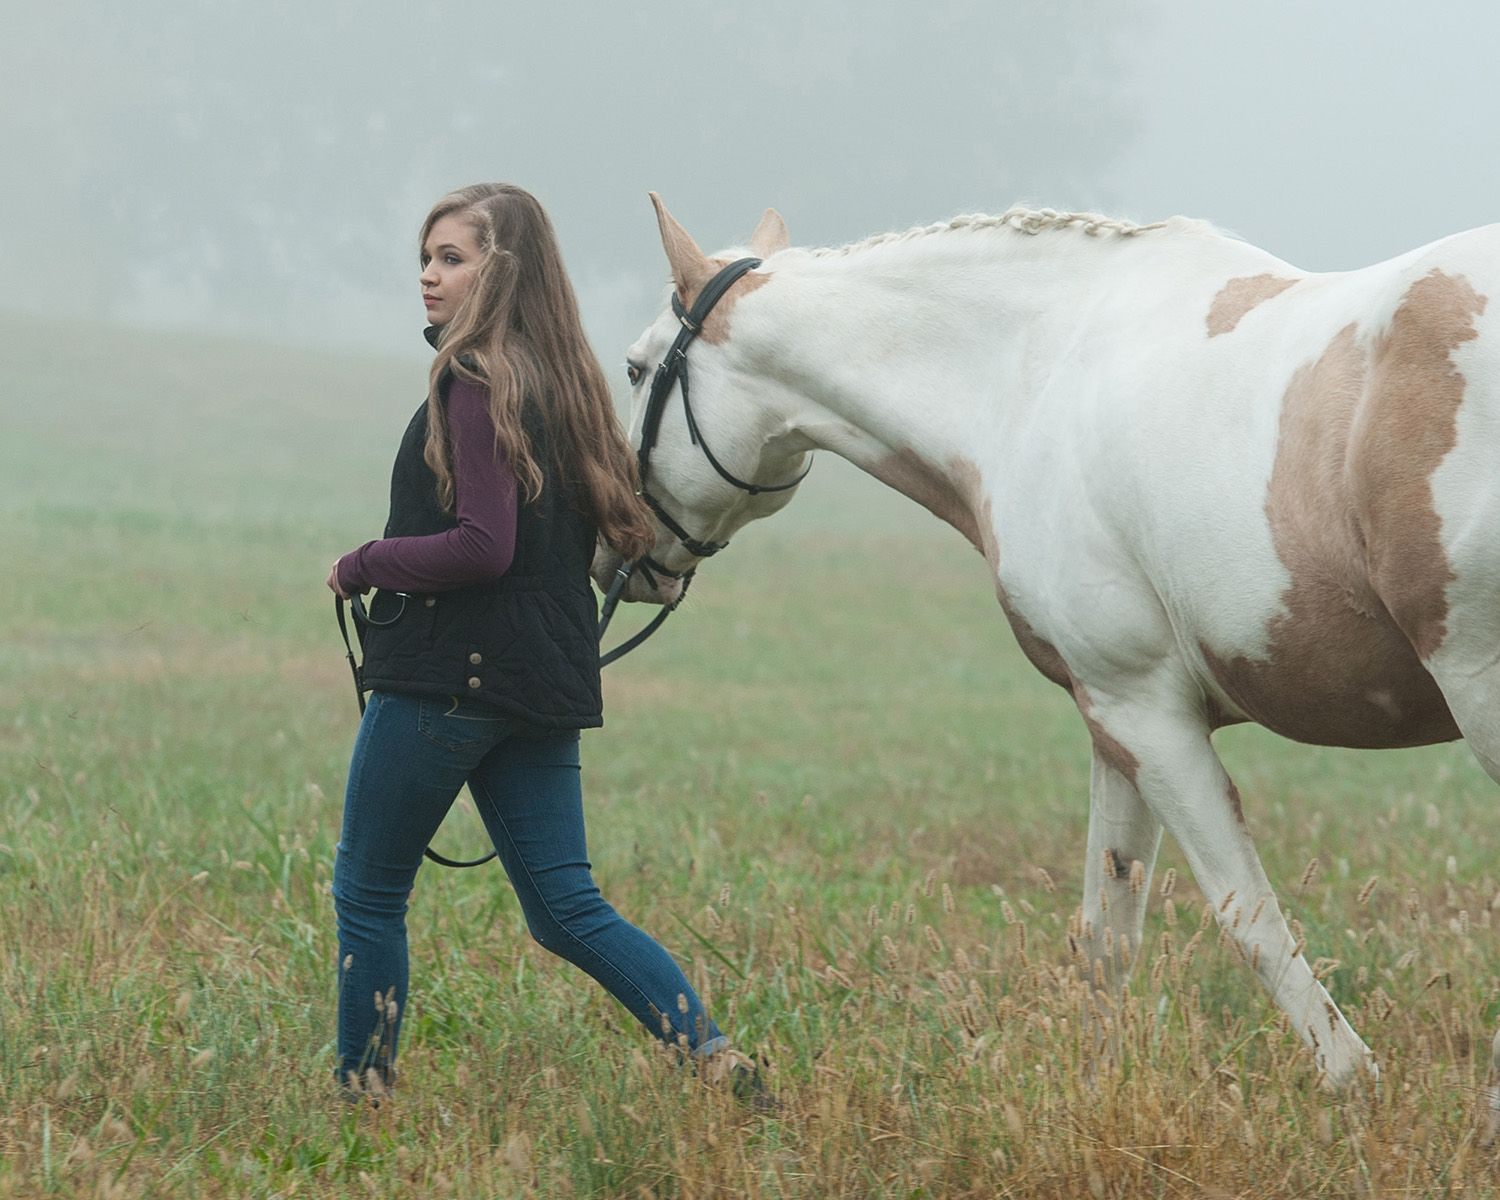 Equestrian foggy morning walk